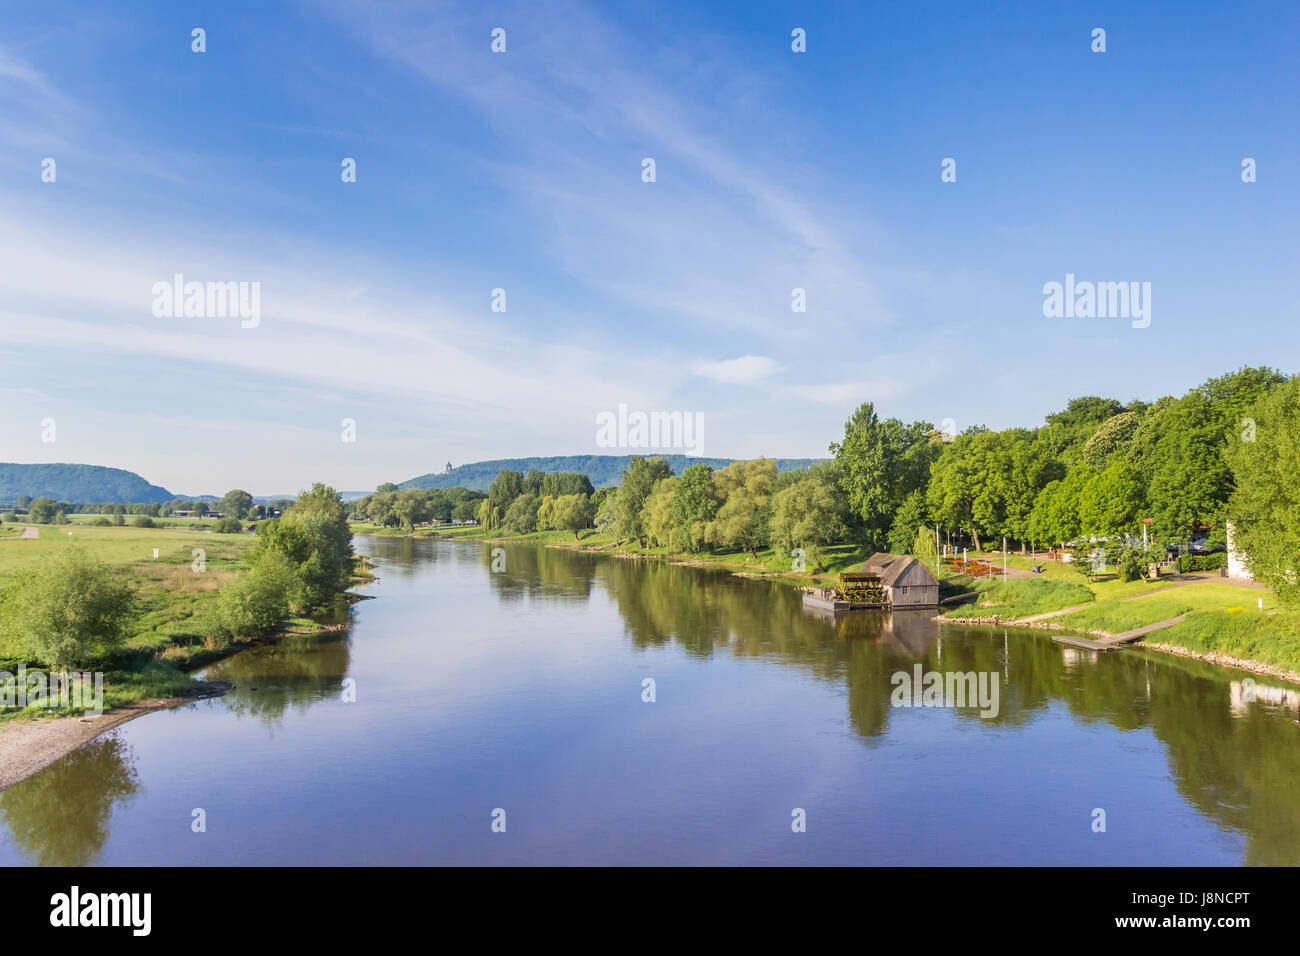 River Weser and old wooden mill near Minden, Germany - Stock Image